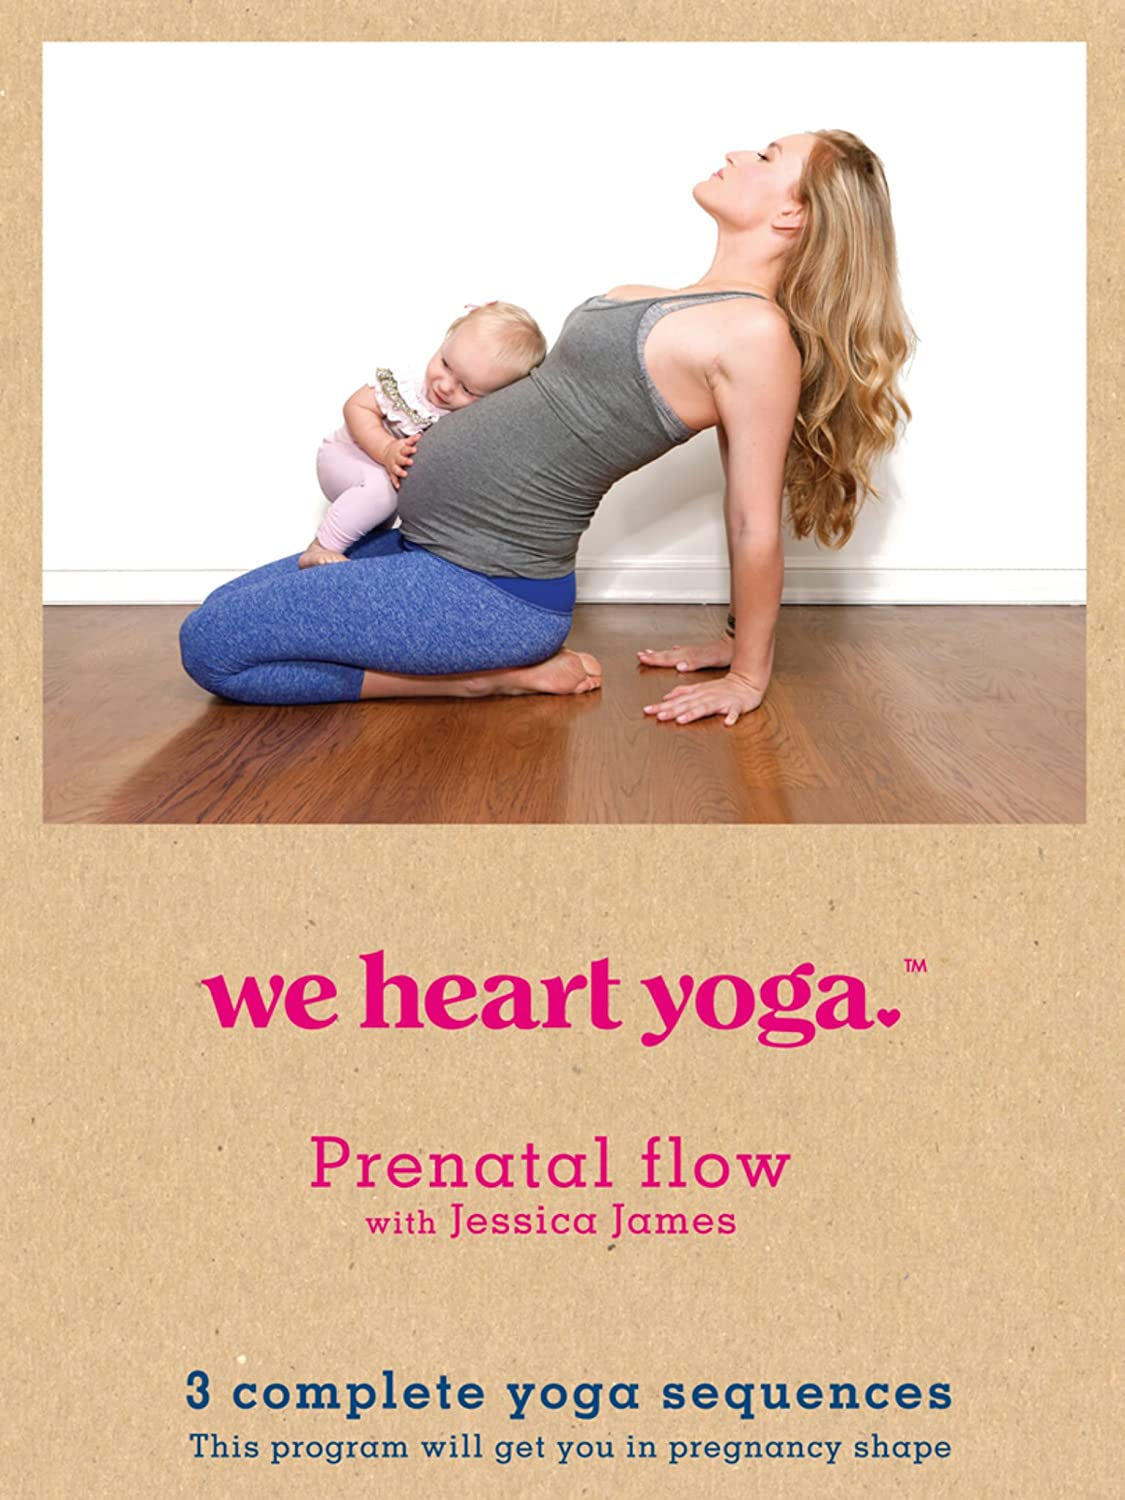 Amazon.com: We Heart Yoga Prenatal Flow with Jessica James ...